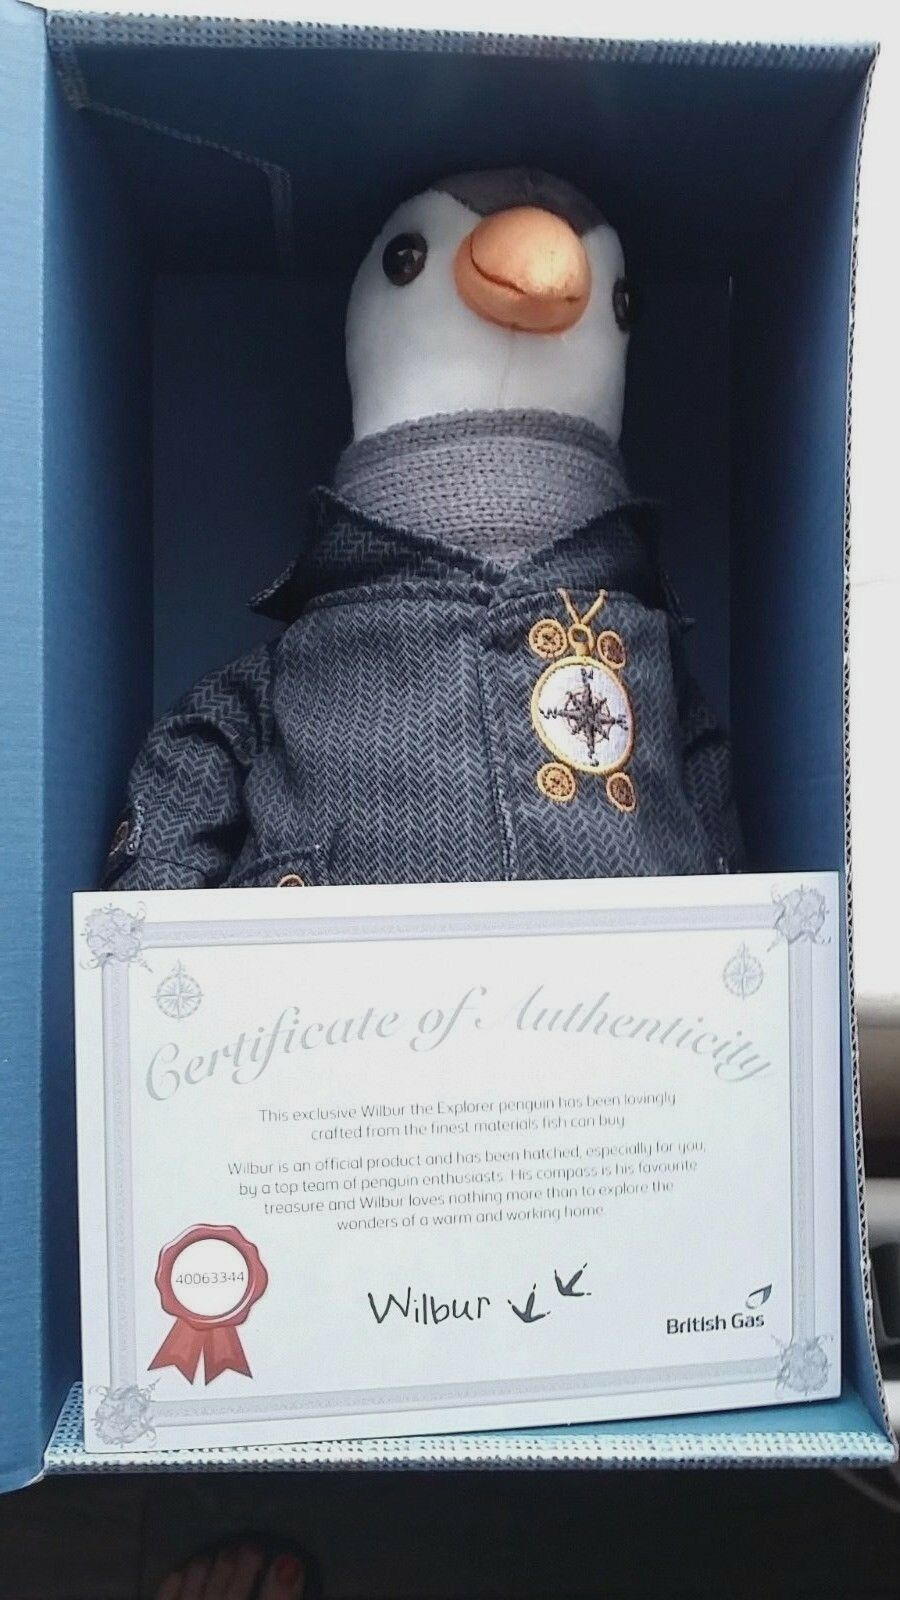 Wilbur the British Gas Penguin soft toy, brand new in box with certificate